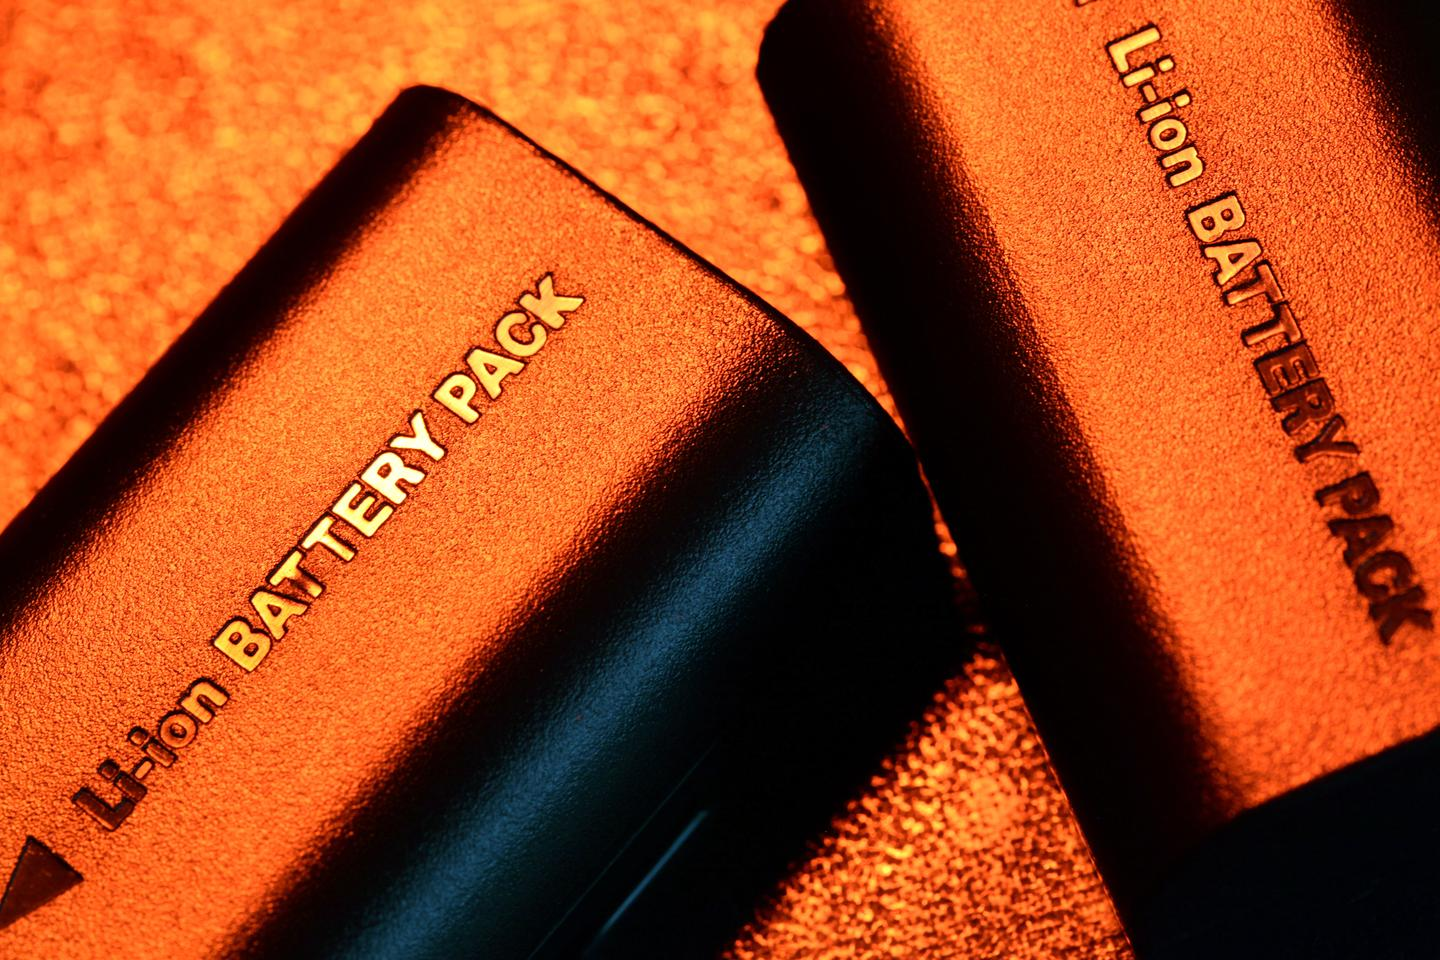 The researchcould result in fast-charging lithium-ion batteries that don't overheat